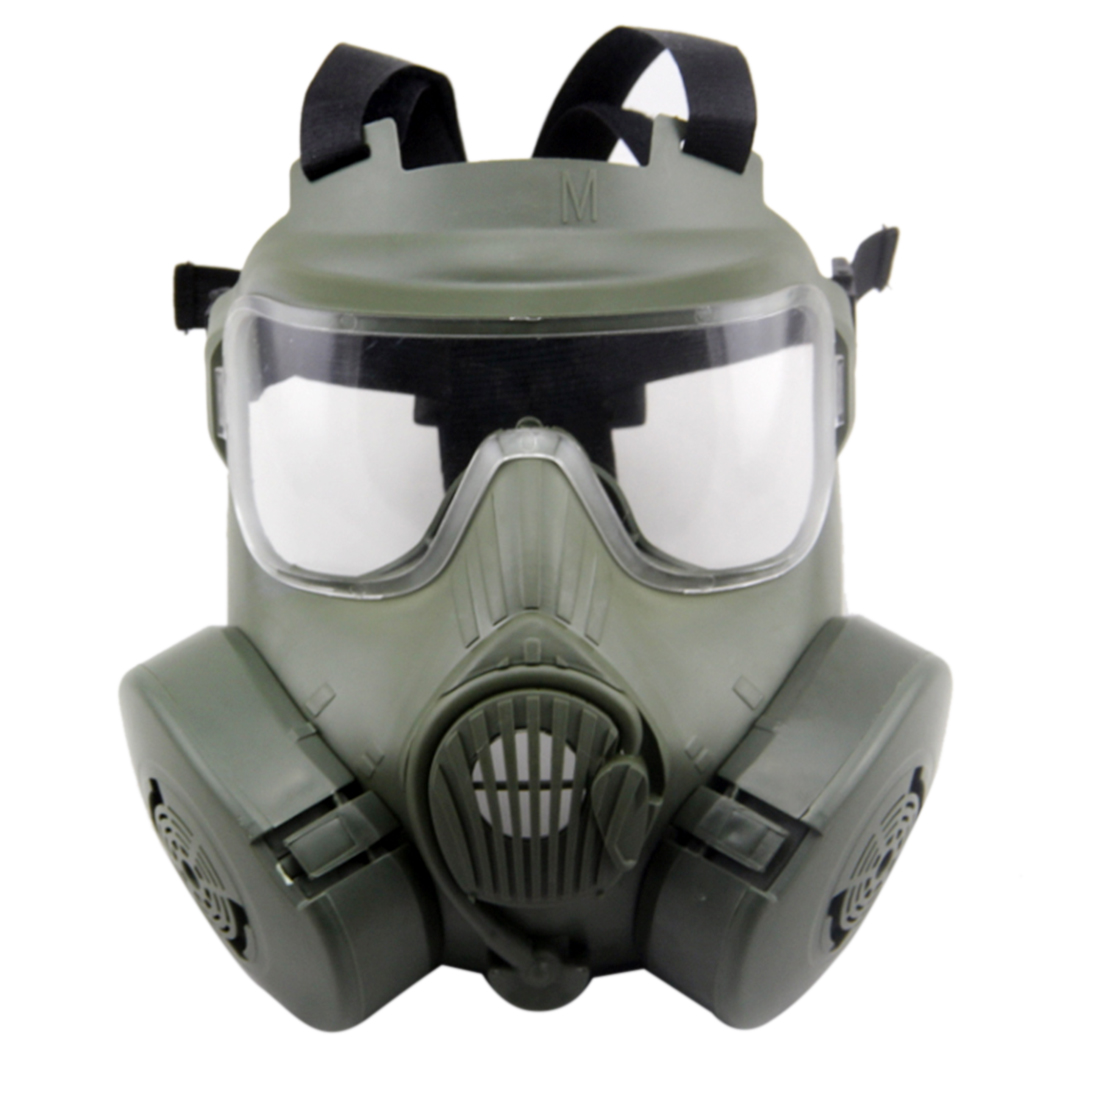 M50 Tactical Mask Wargame Paintball Full Face Skull Gas Mask CS Mask with Fan for Outdoor Airsoft Shooting Accessories- Green